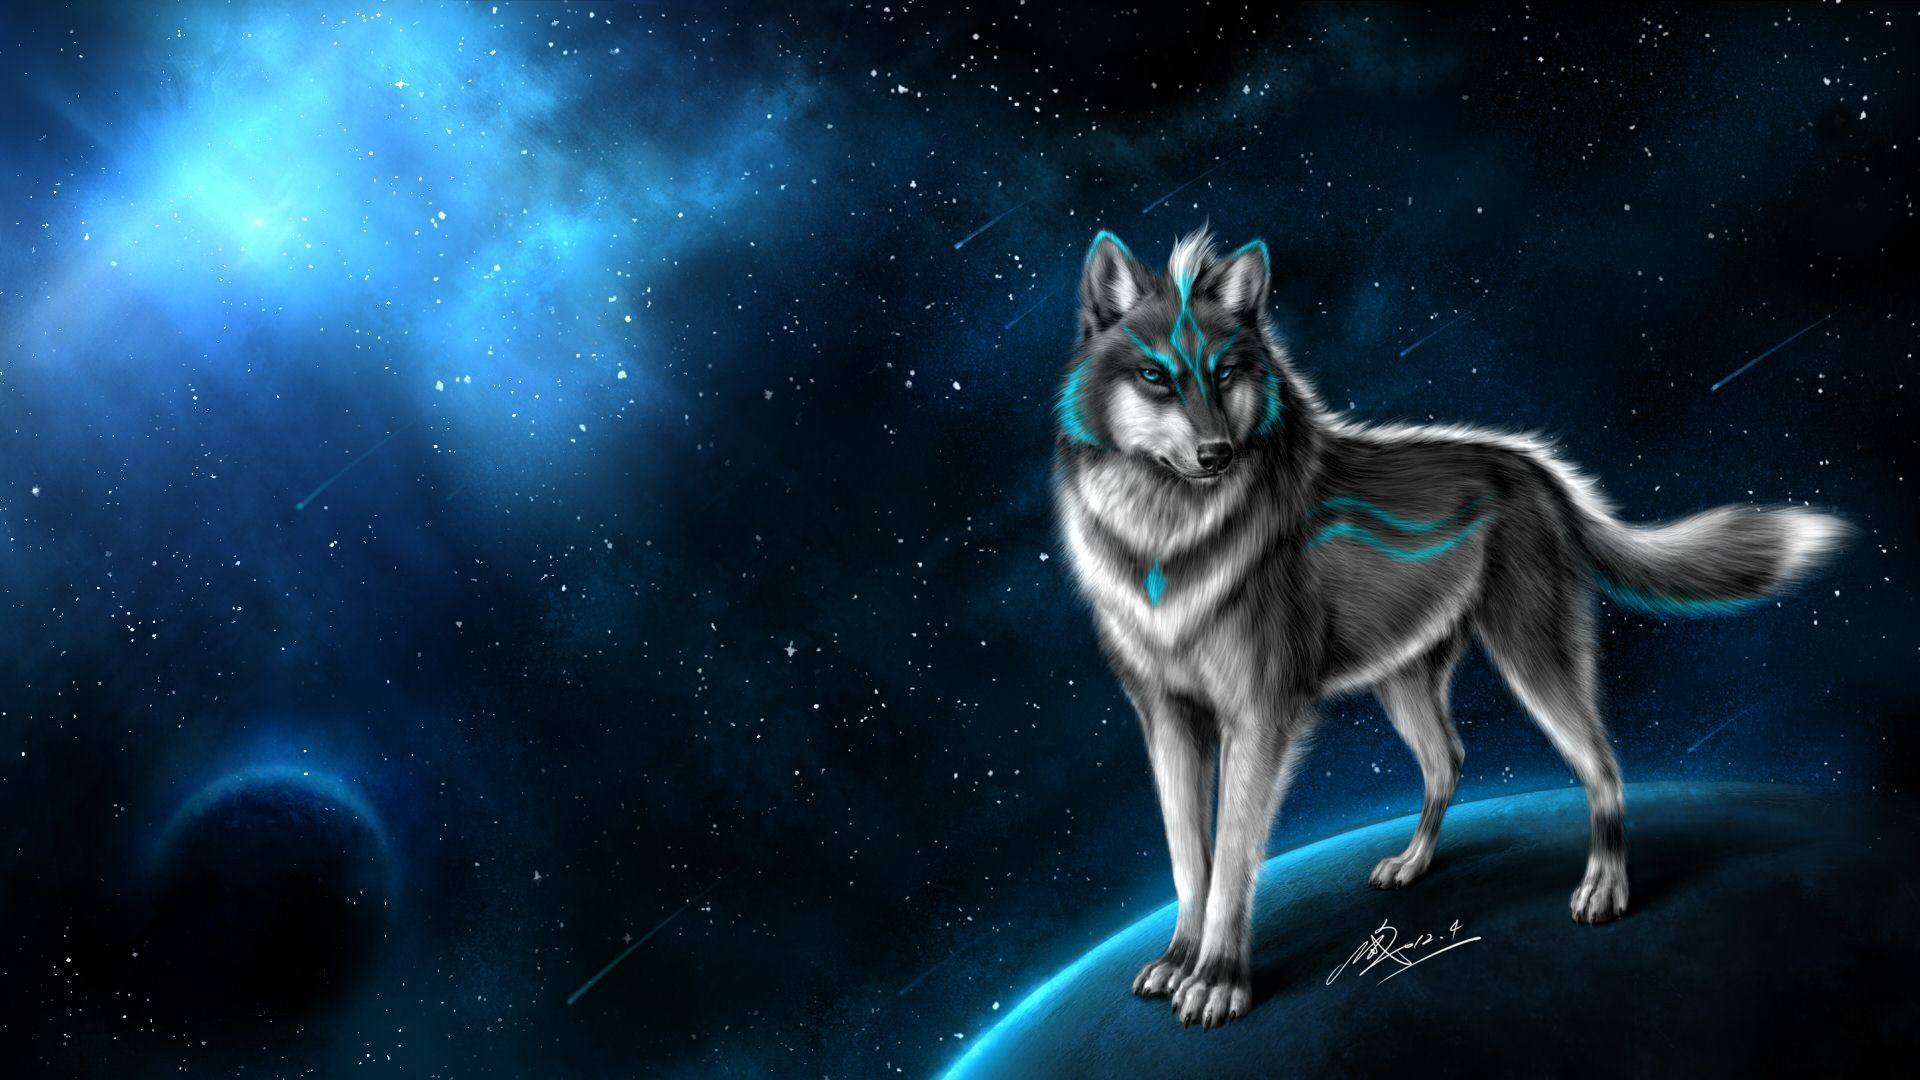 Wolf Pictures All About Wolves Wolves Wallpaper Wallpapers)